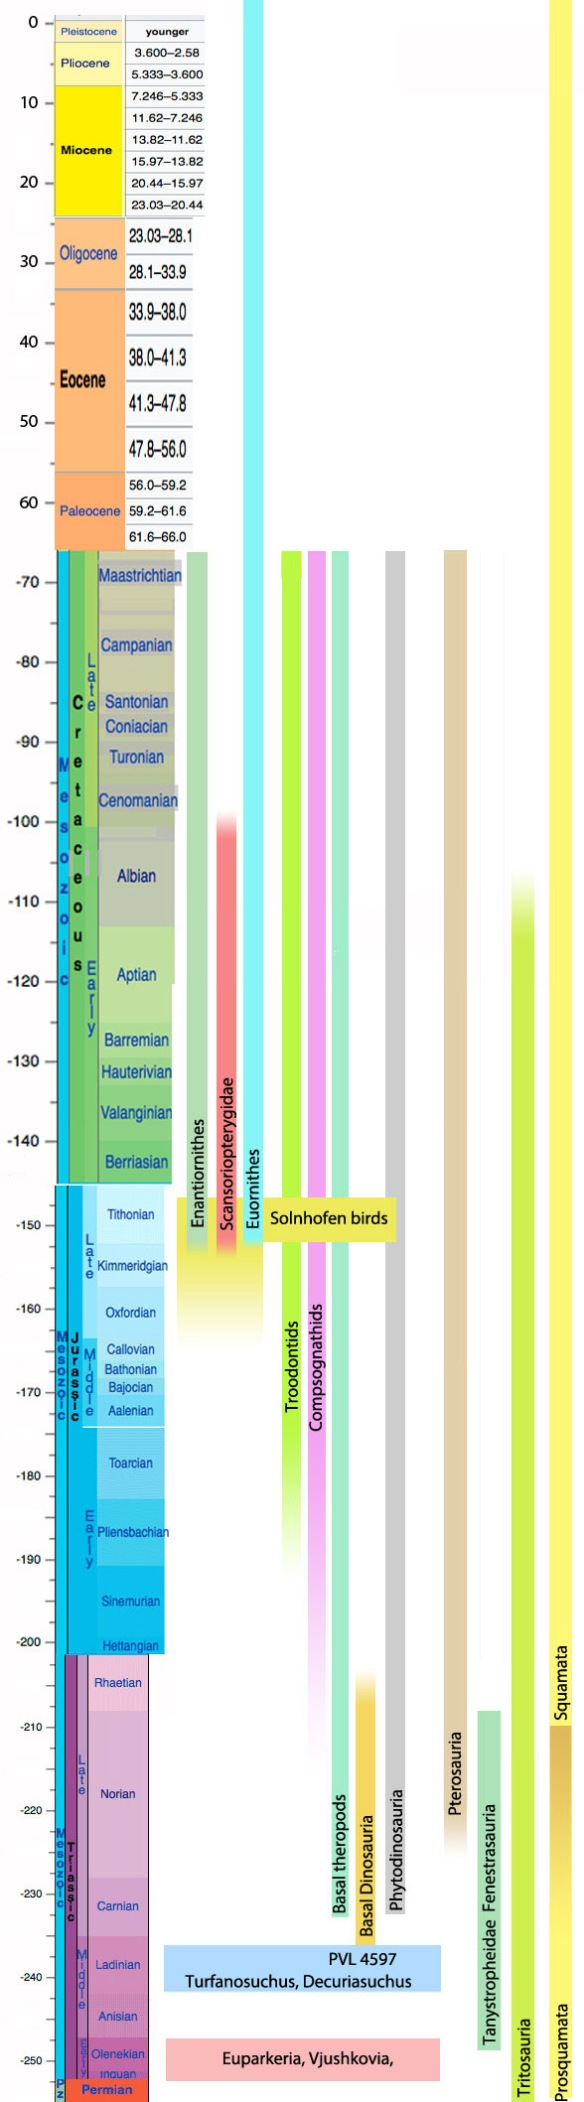 Figure 1. Mesozoic chronology of bird, dinosaur and pterosaur clades.